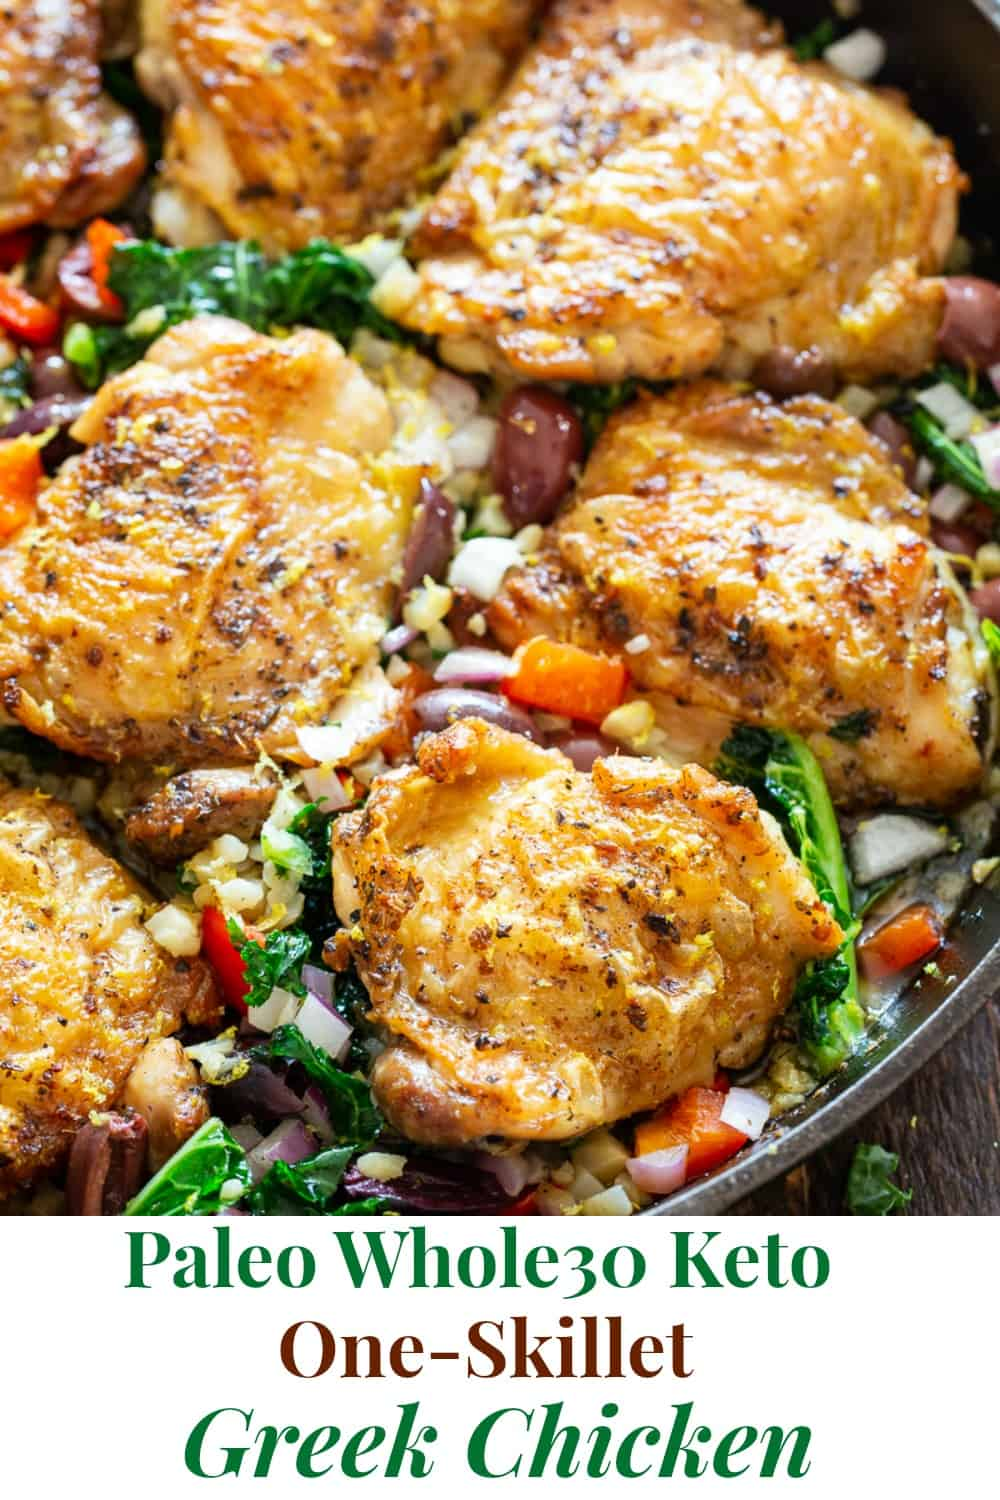 This Greek Chicken and veggies is packed with flavor, made all in one skillet and perfect for weeknights. It's a simple Paleo and Whole30 dinner that you'll want on repeat in your house! #Paleo #cleaneating #paleorecipes #whole30recipes #ketorecipes